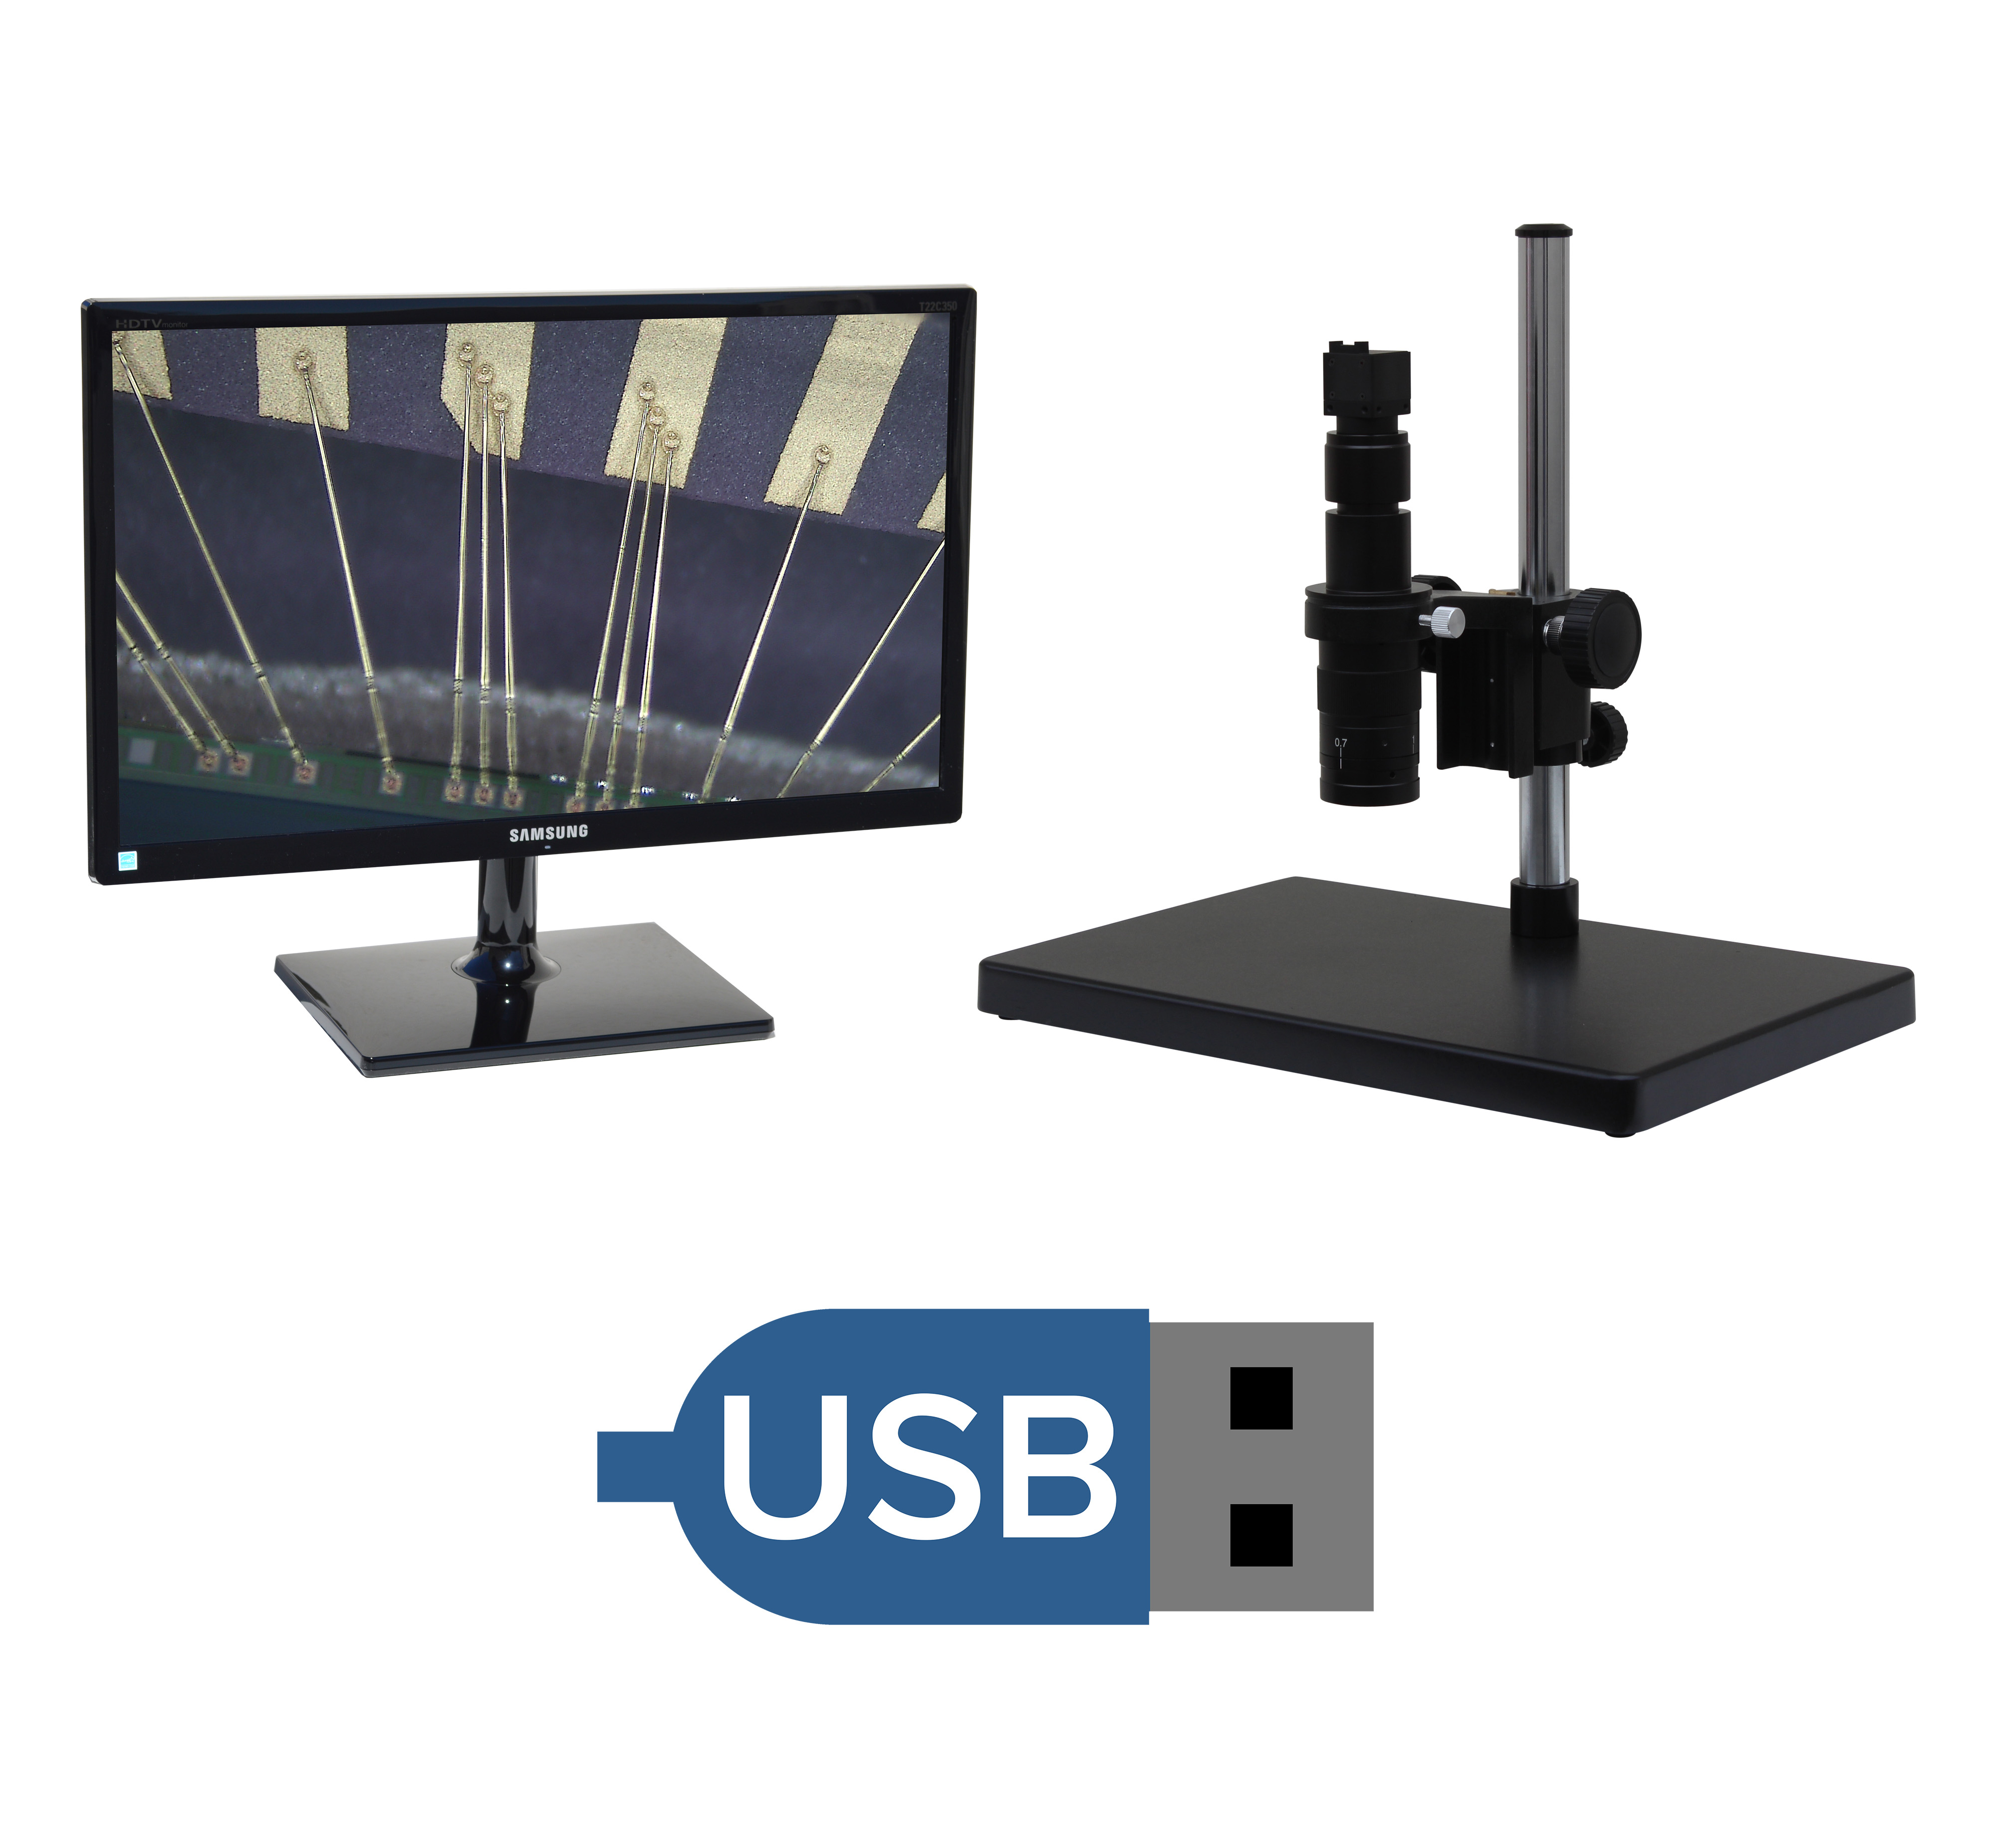 eUSx305 series 24x-160x or possible 12x-320x USB Microscope (3, 10 or 14 MP) with Measurement/Image Processing (PC Required) [Starting at $599]